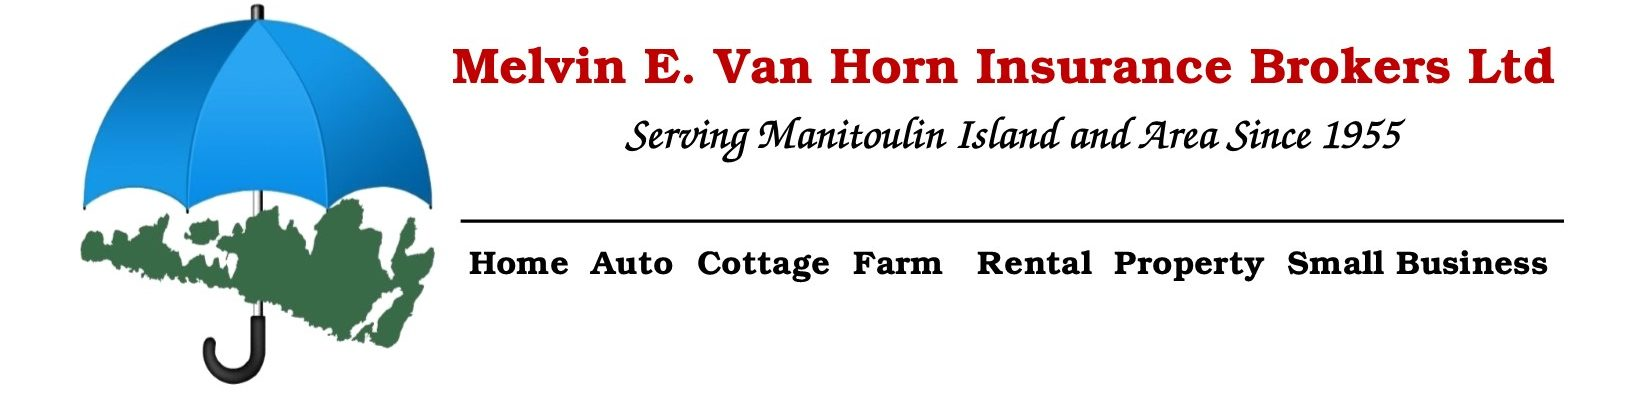 Melvin E. Van Horn Insurance Brokers Ltd.